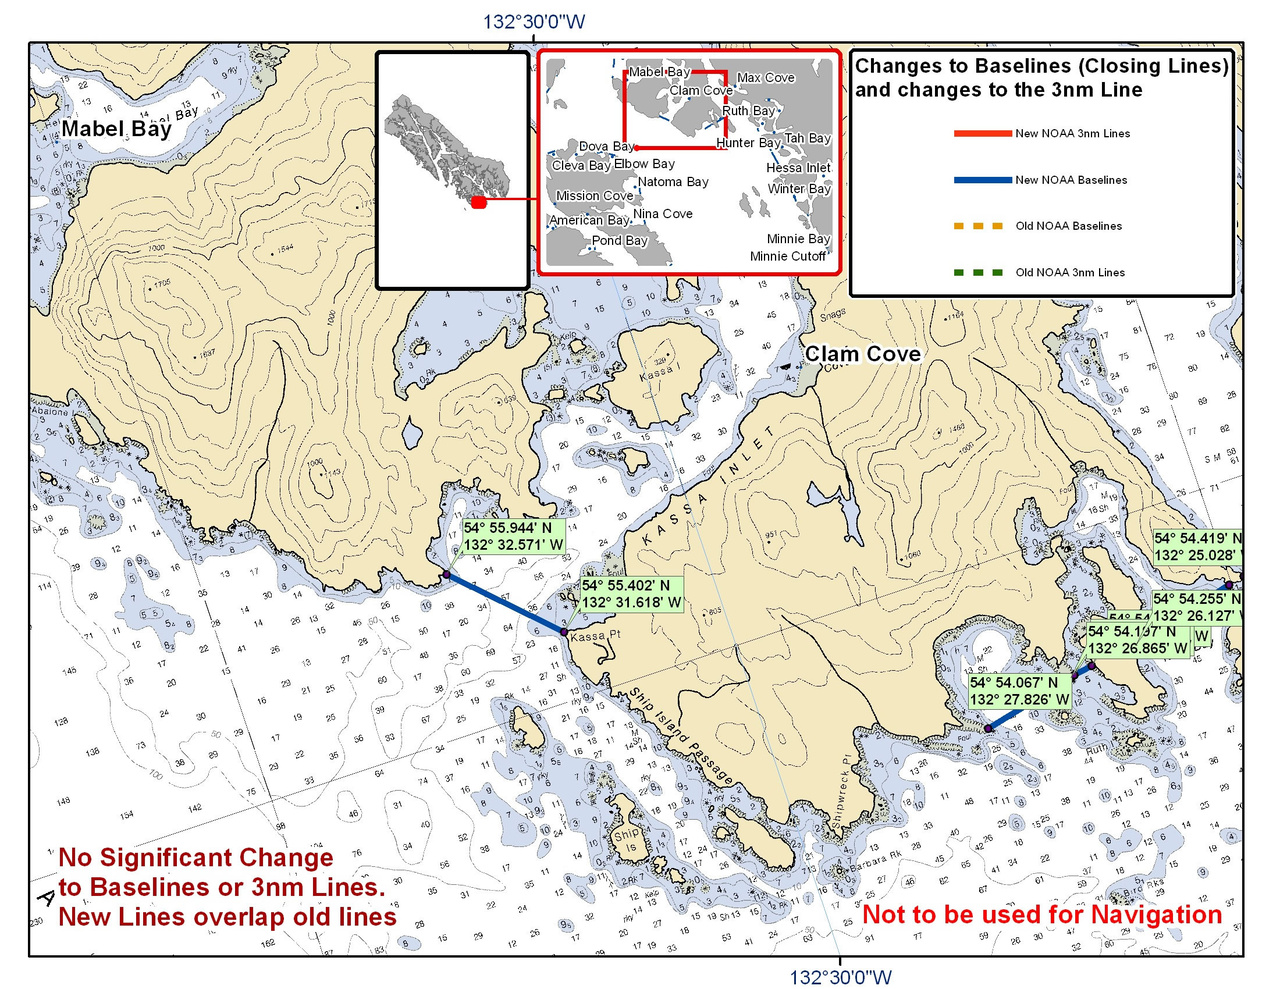 Chart for Clam Cove